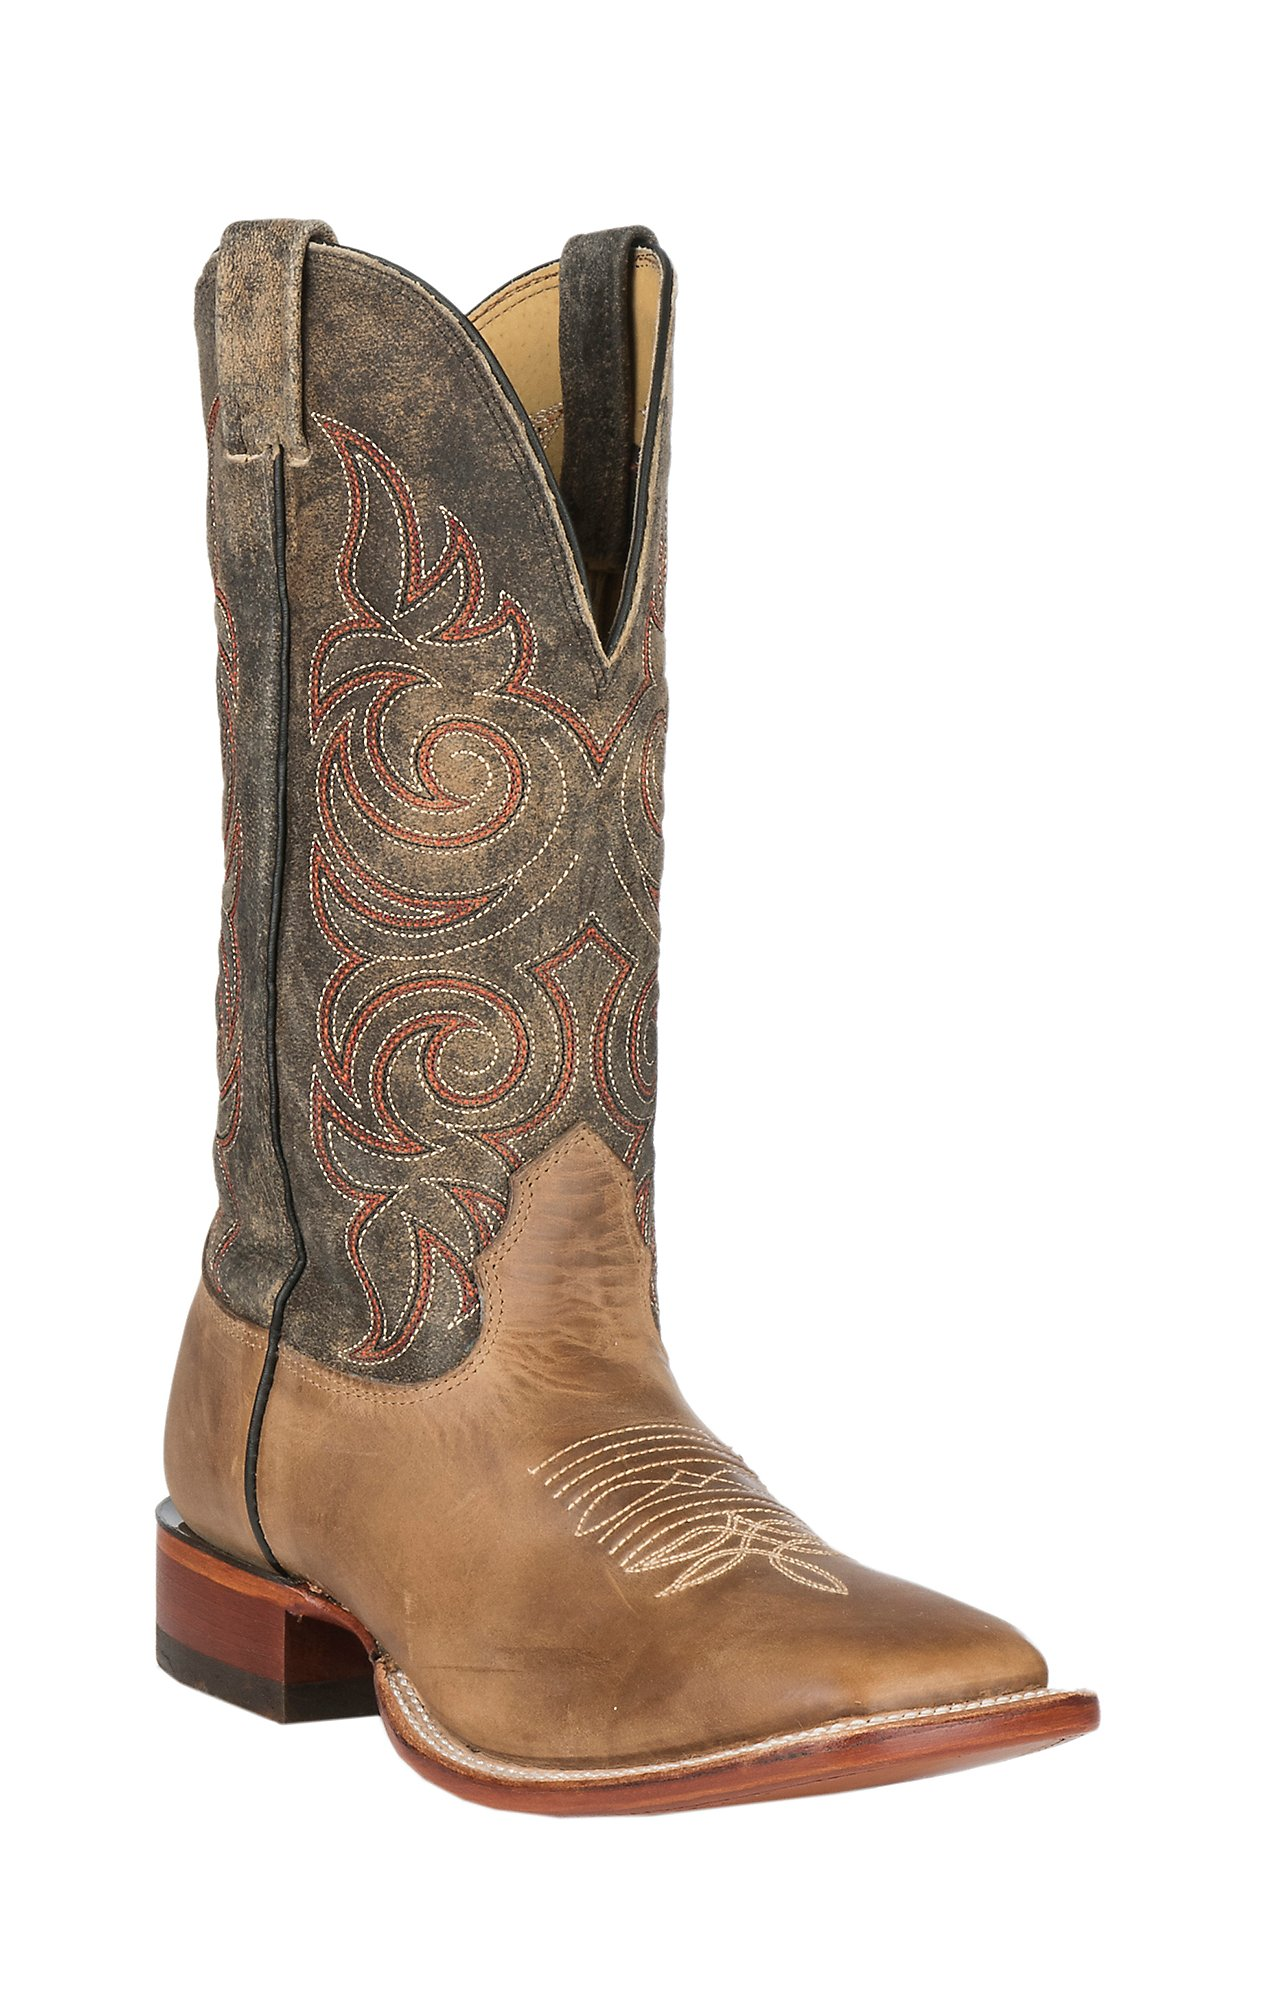 Old West Bottes Western Little Rider Marron Taille 25 VgltWm